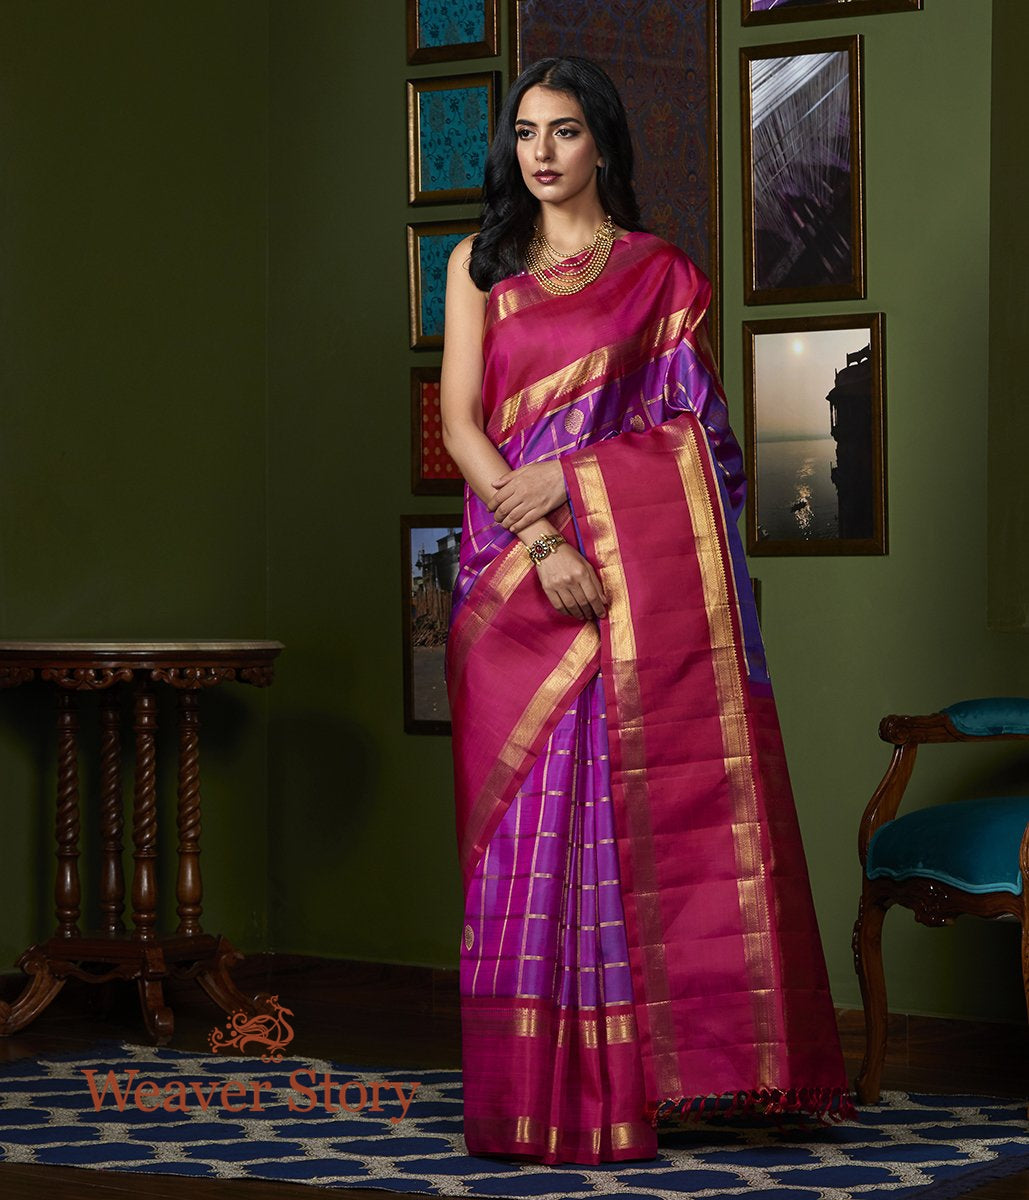 Handwoven Purple Real Zari Kanjivaram Silk Saree with Red Border and Pallu